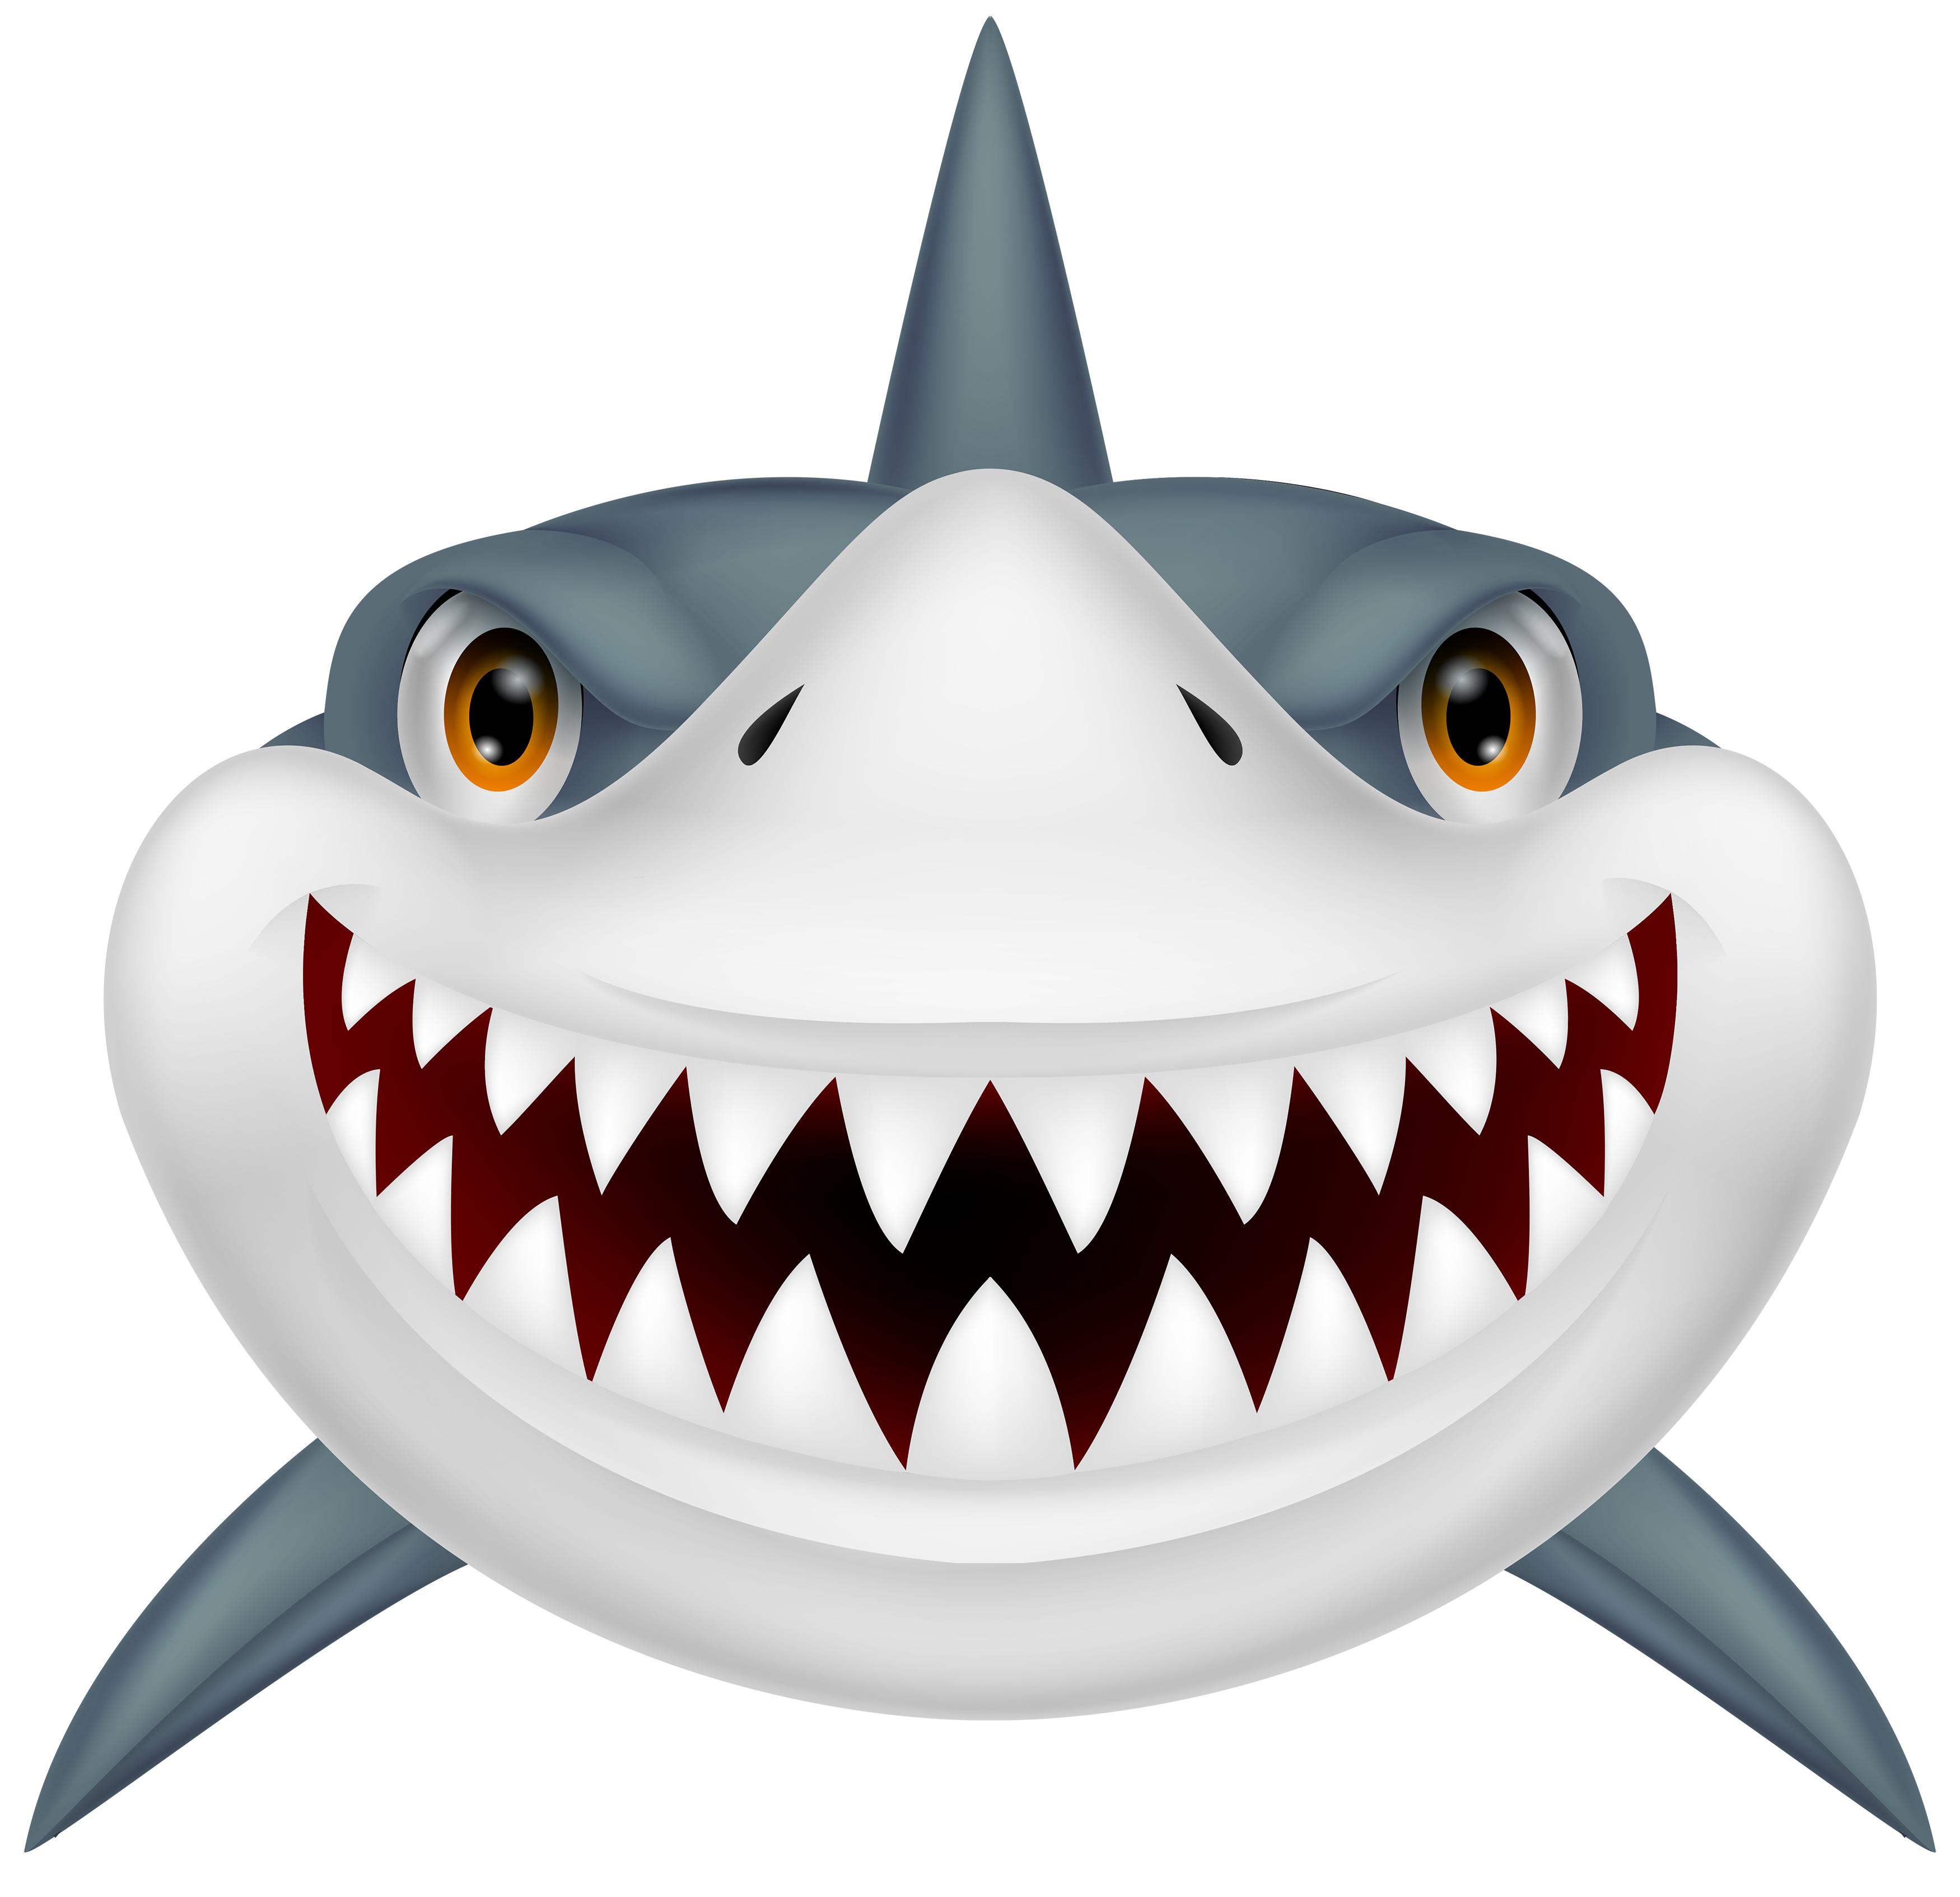 Library Of Shark With Mouth Open Vector Black And White -6682